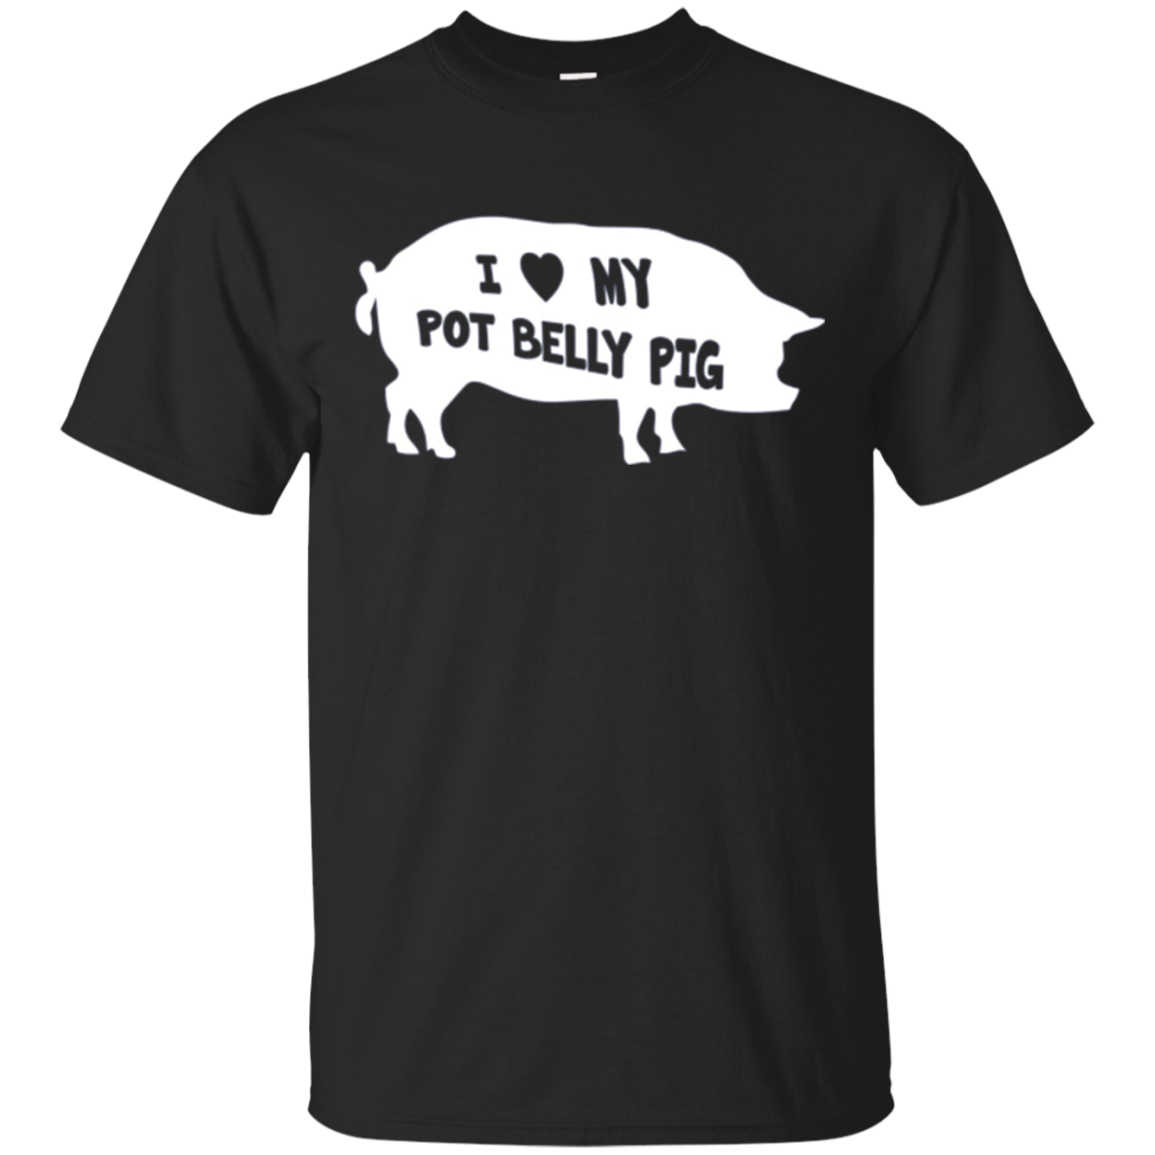 I Love My Pot Belly Pig Farm Animal Pet Shirt